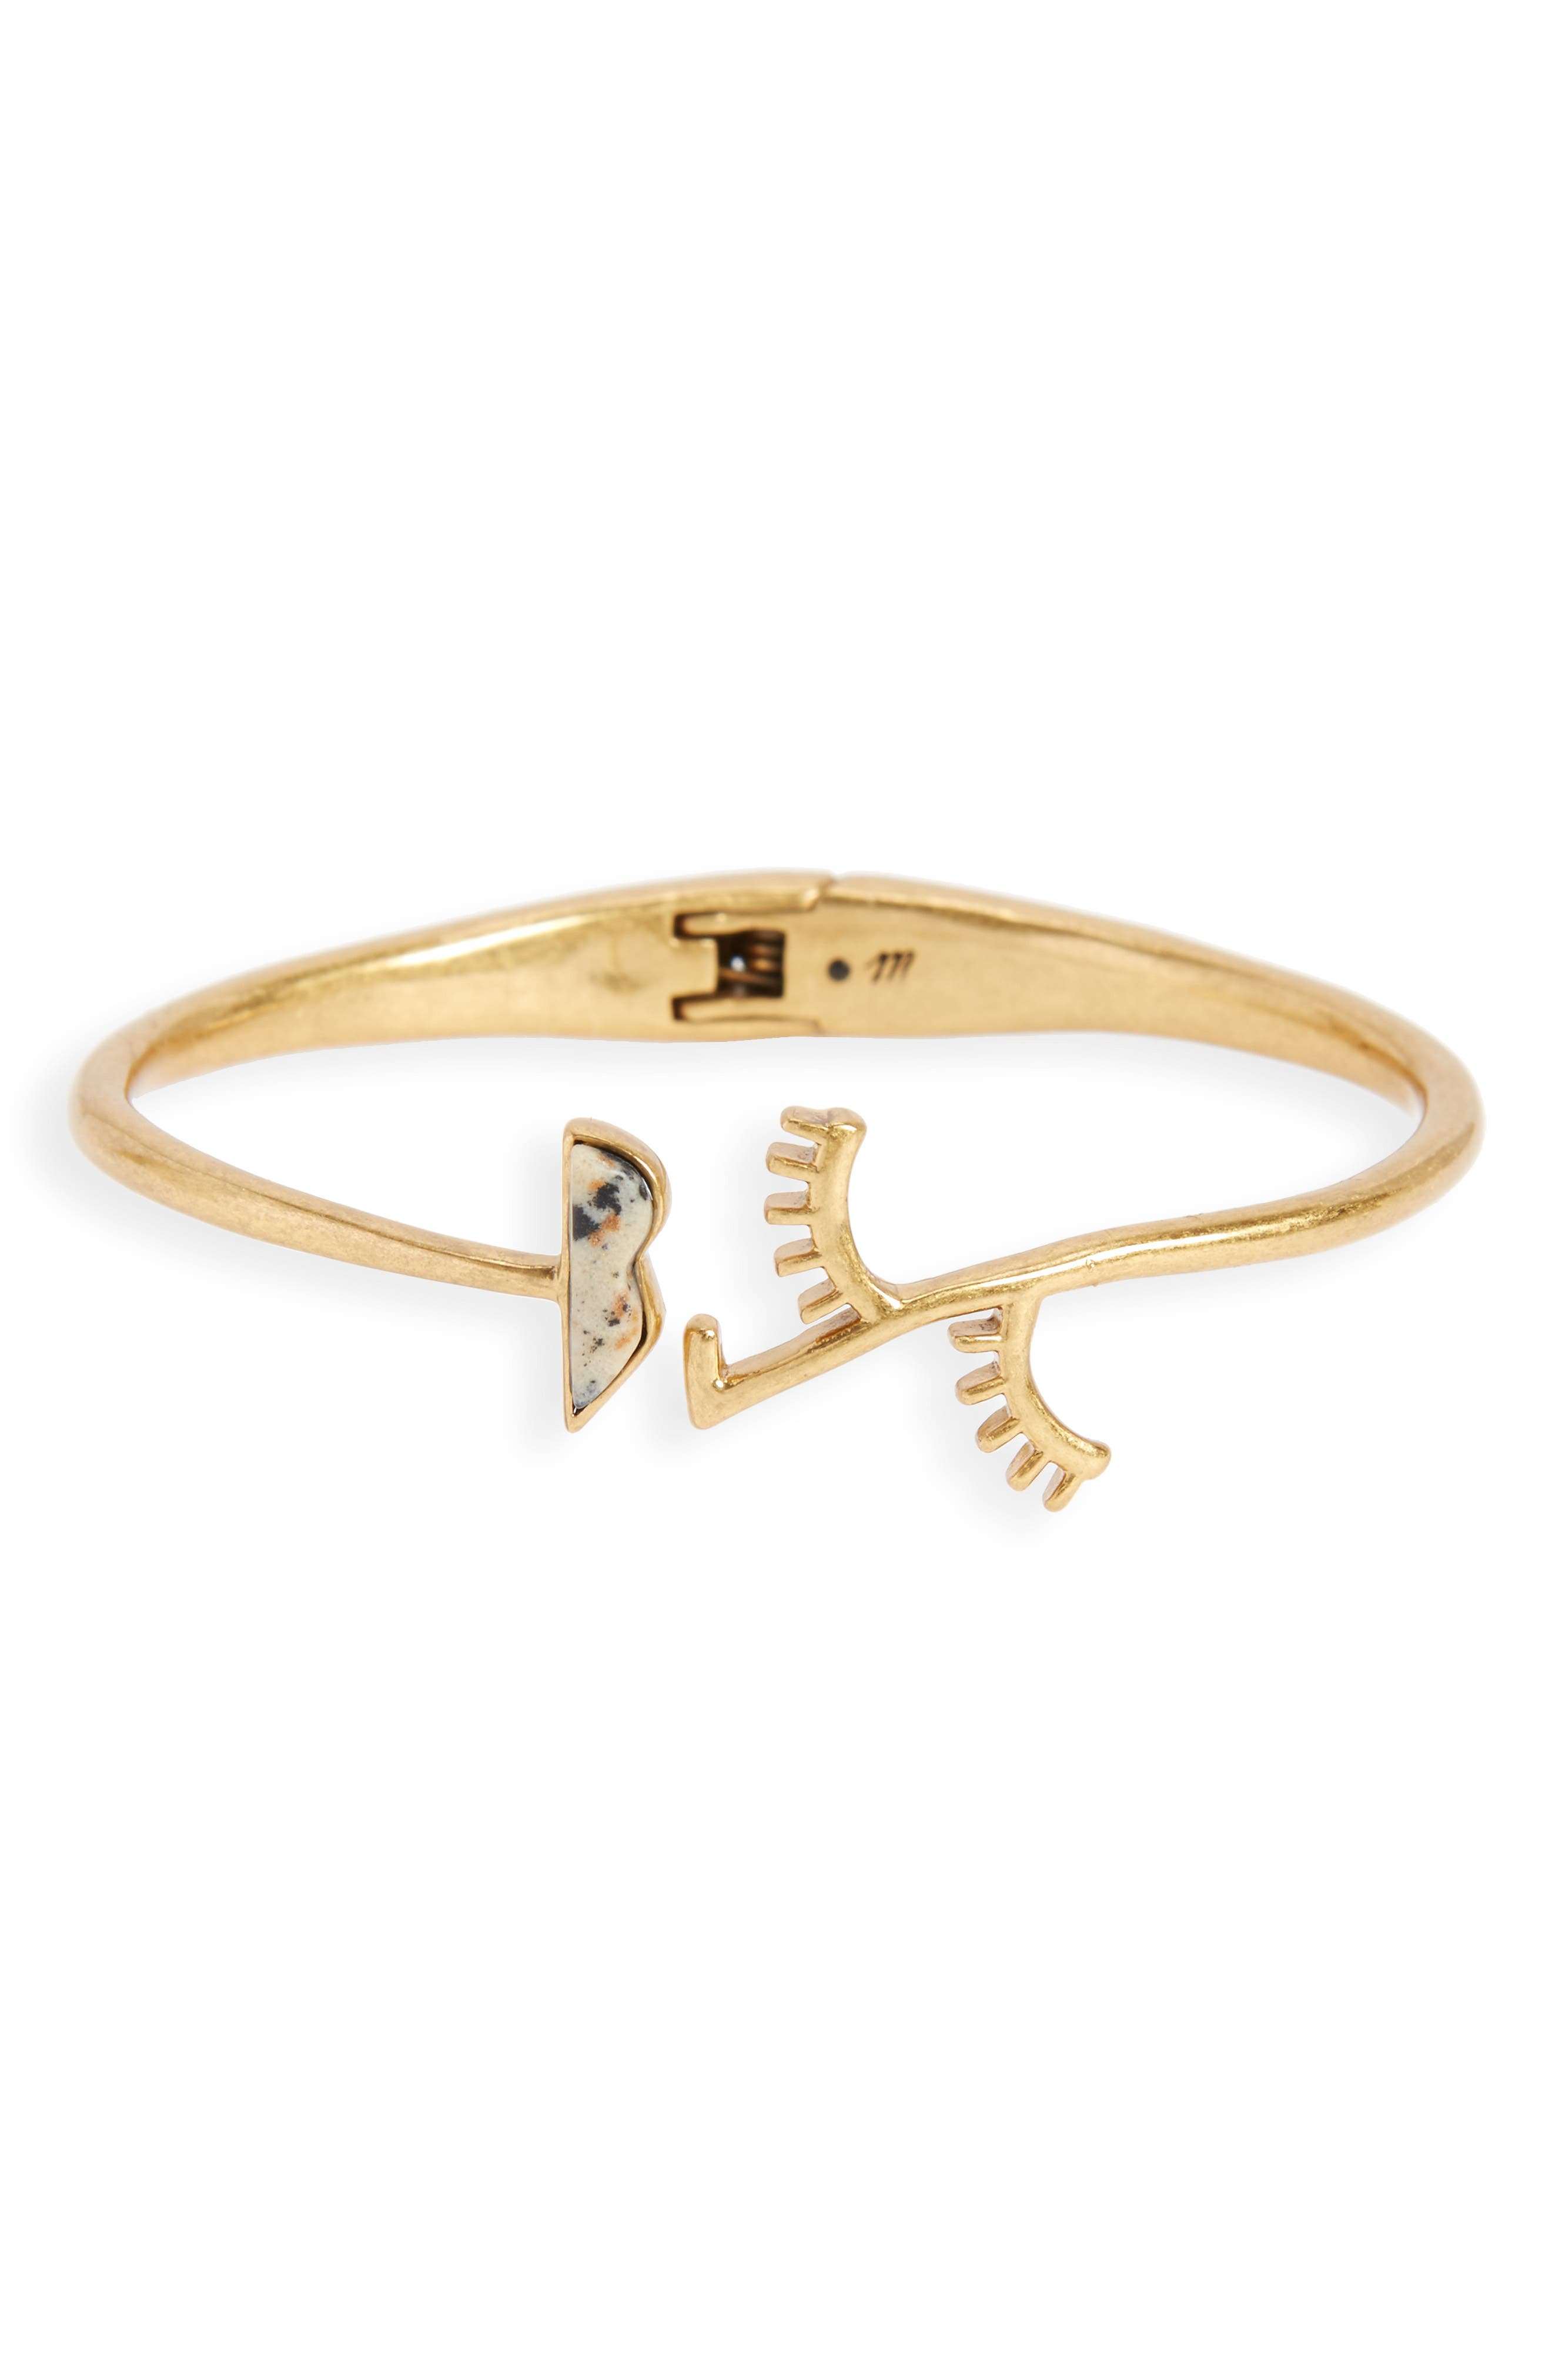 Madewell Face Value Hinge Bracelet